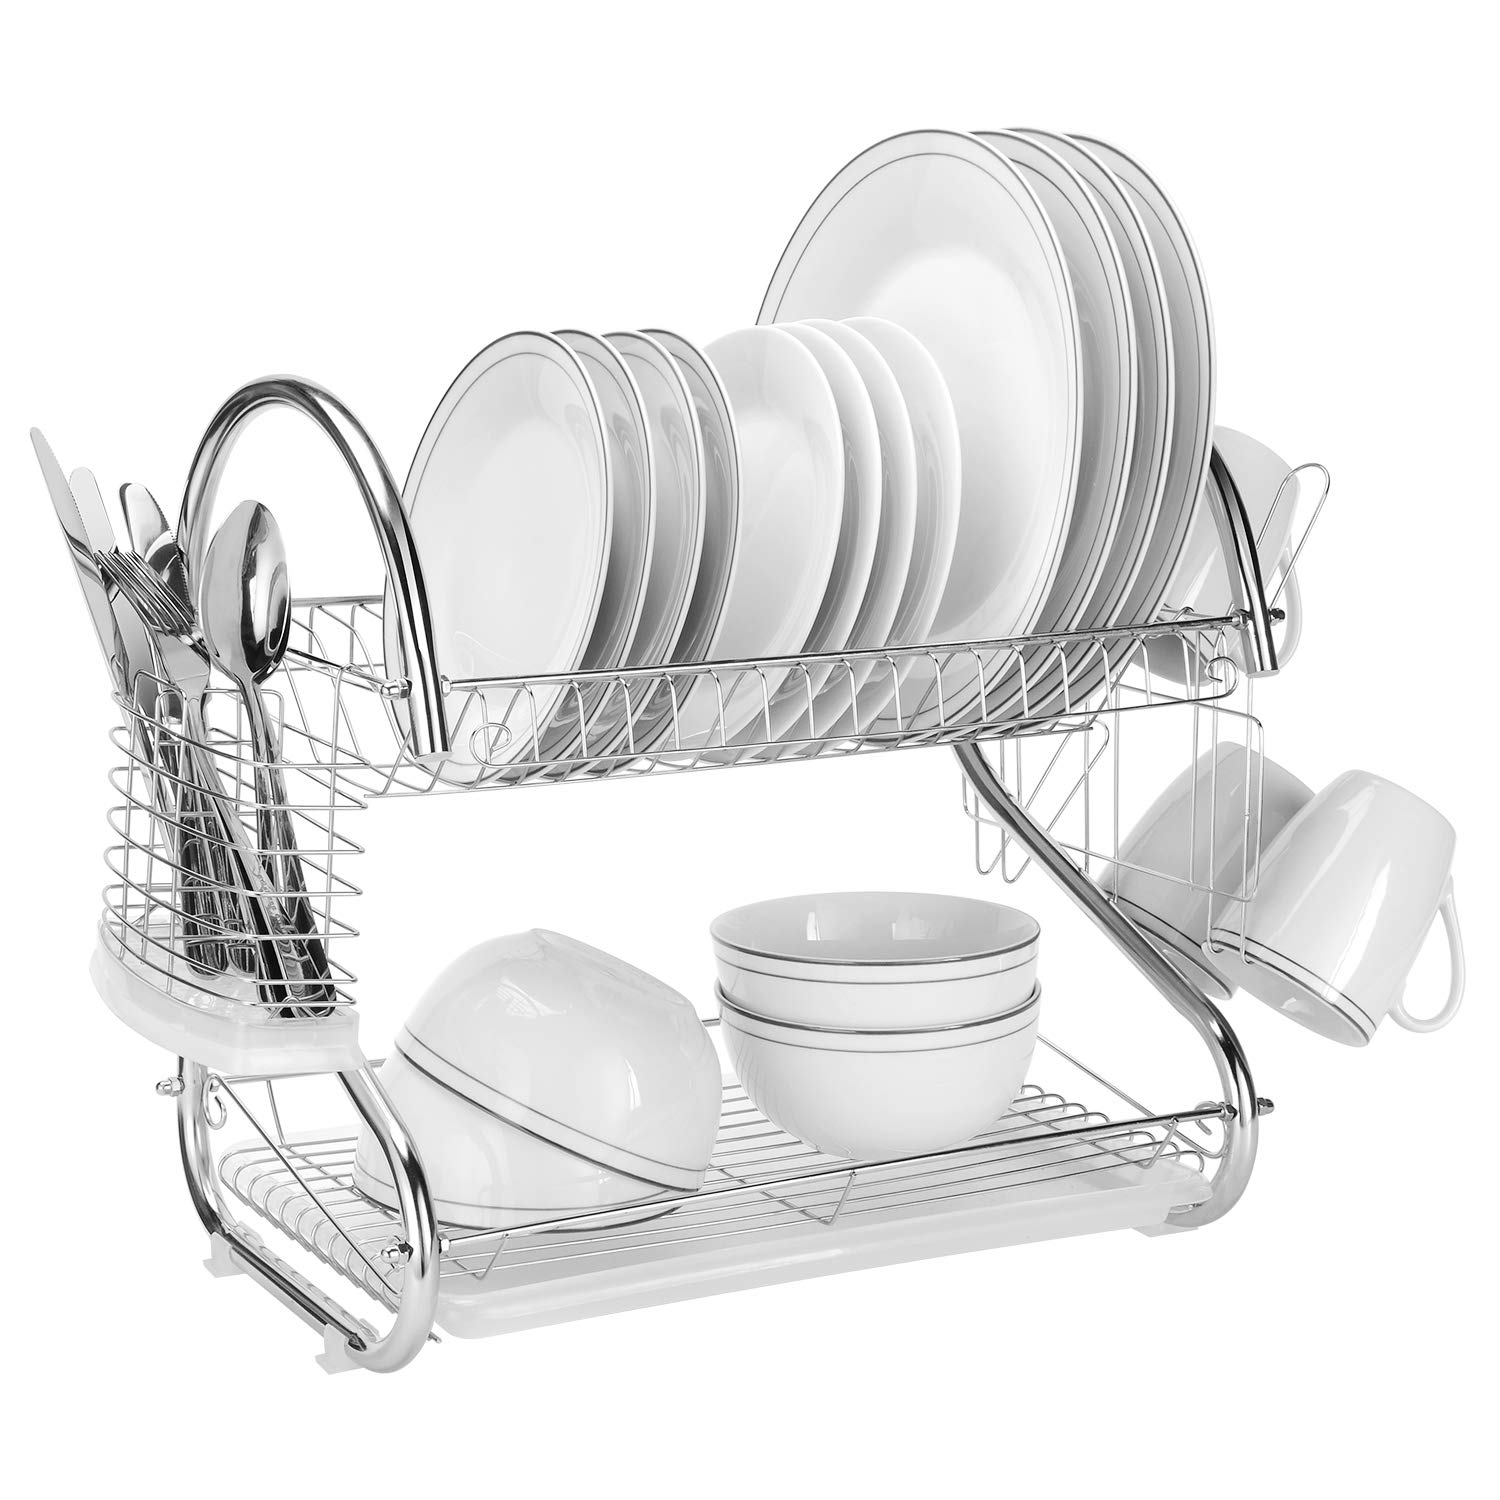 SortWise ® S-Shaped 2-Tier Multi-Function Stainless Steel Dish Drying Rack with Drainboard, Removeable Cup Drainer Strainer & Cultery Holder for Forks or Knives